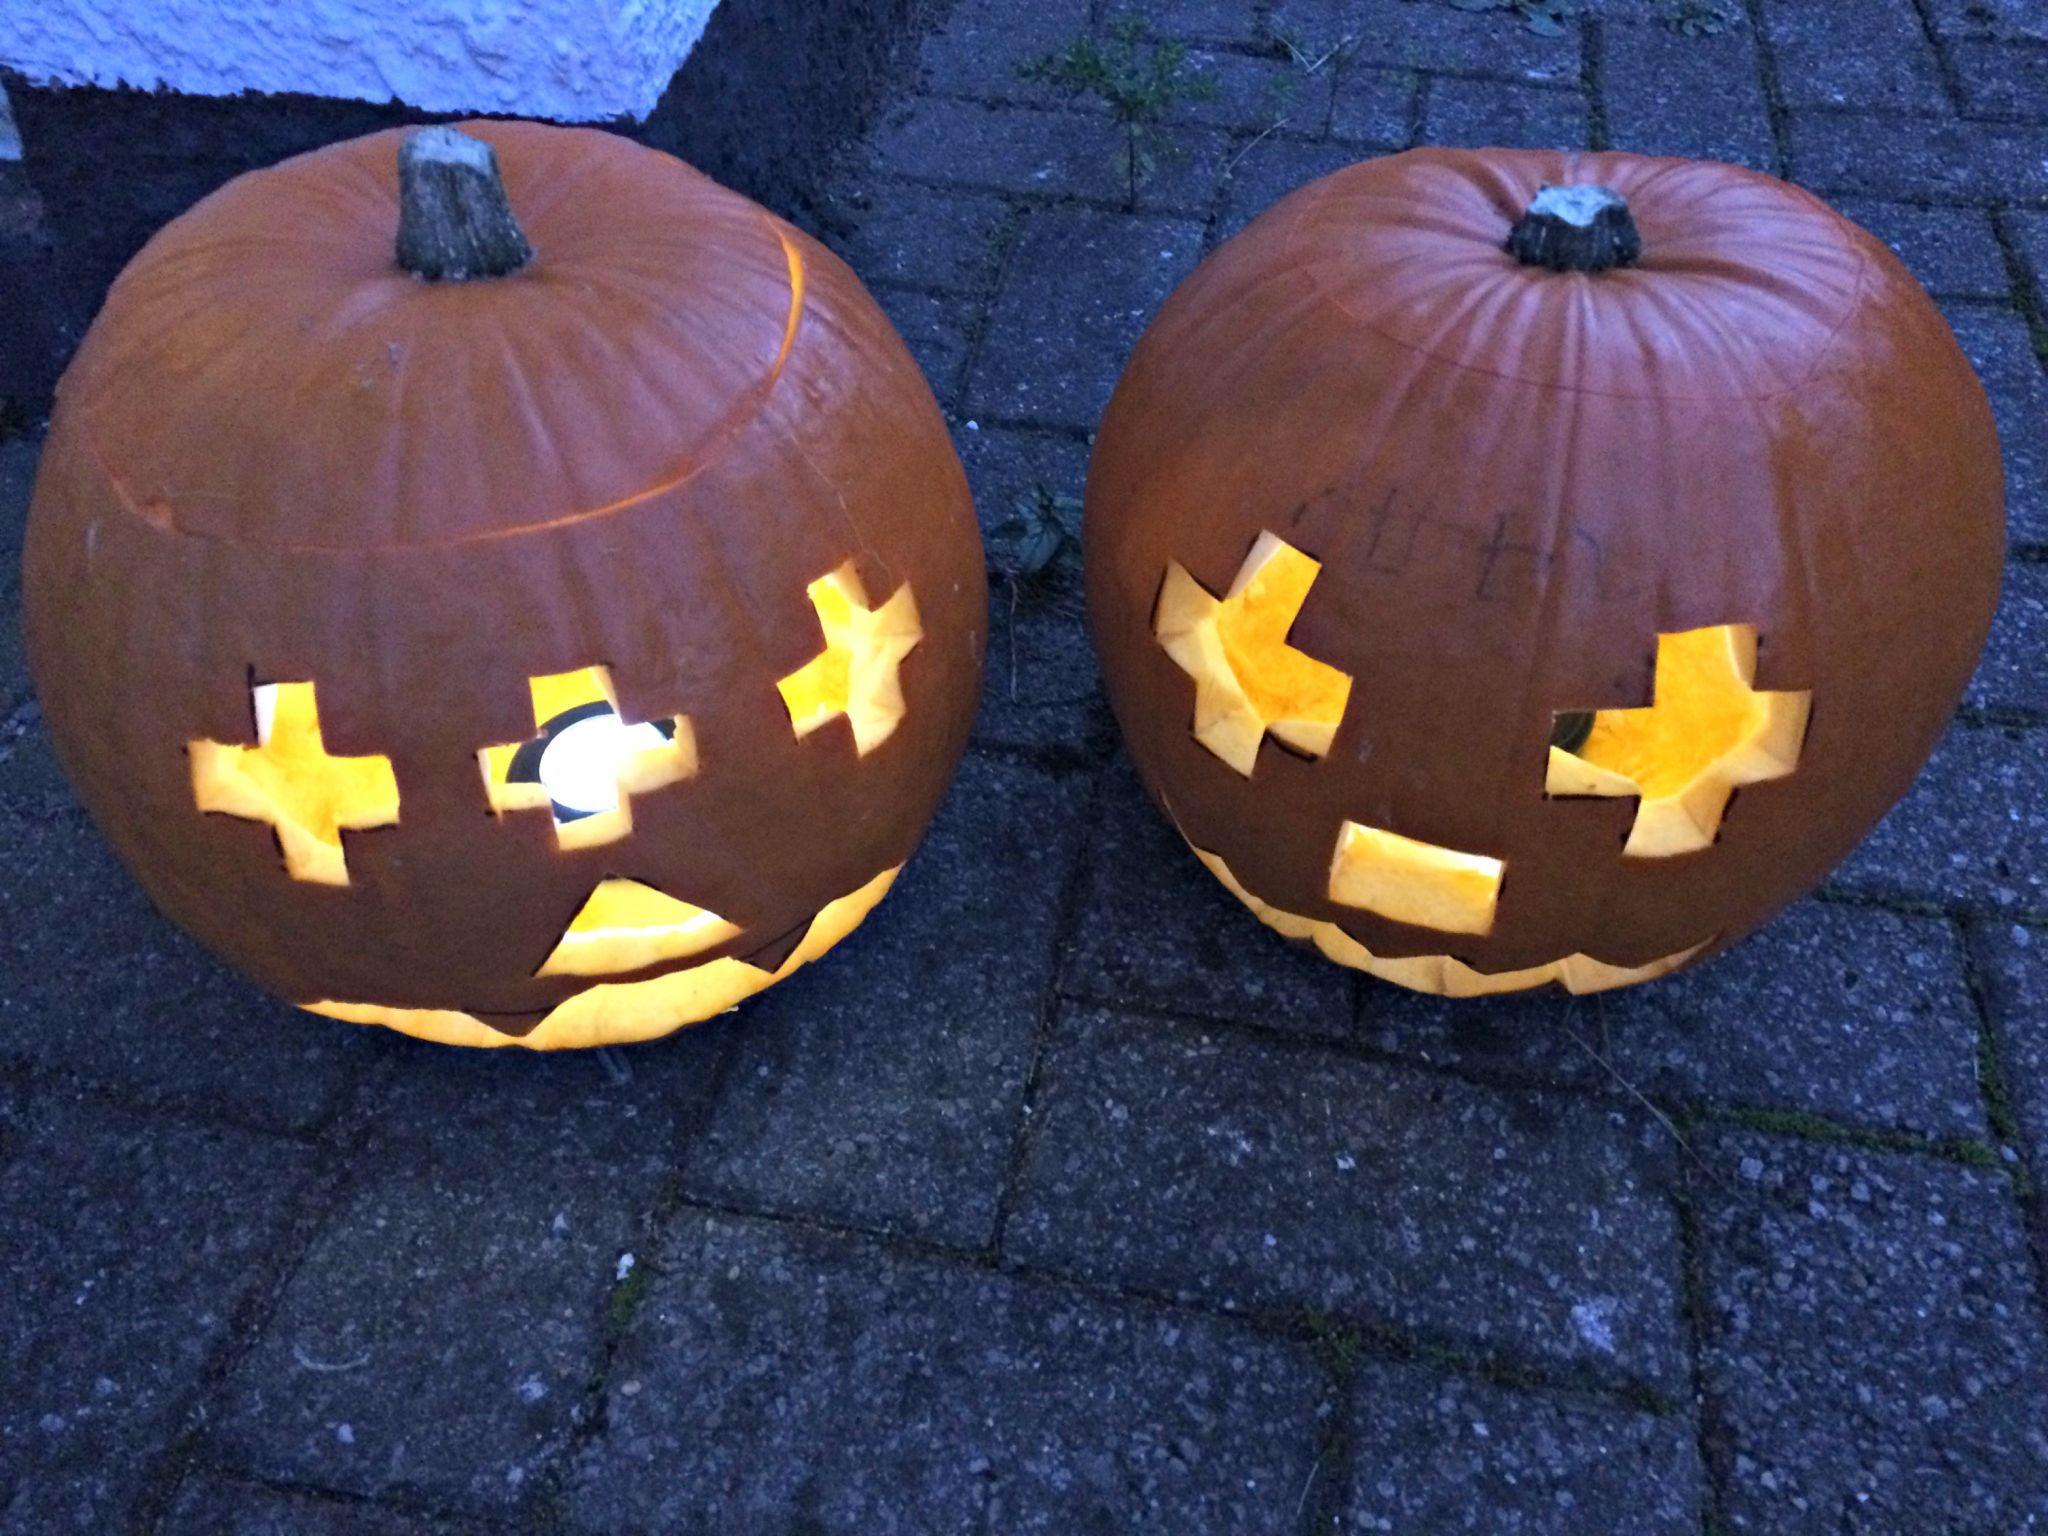 2 carved and lit Halloween pumpkins